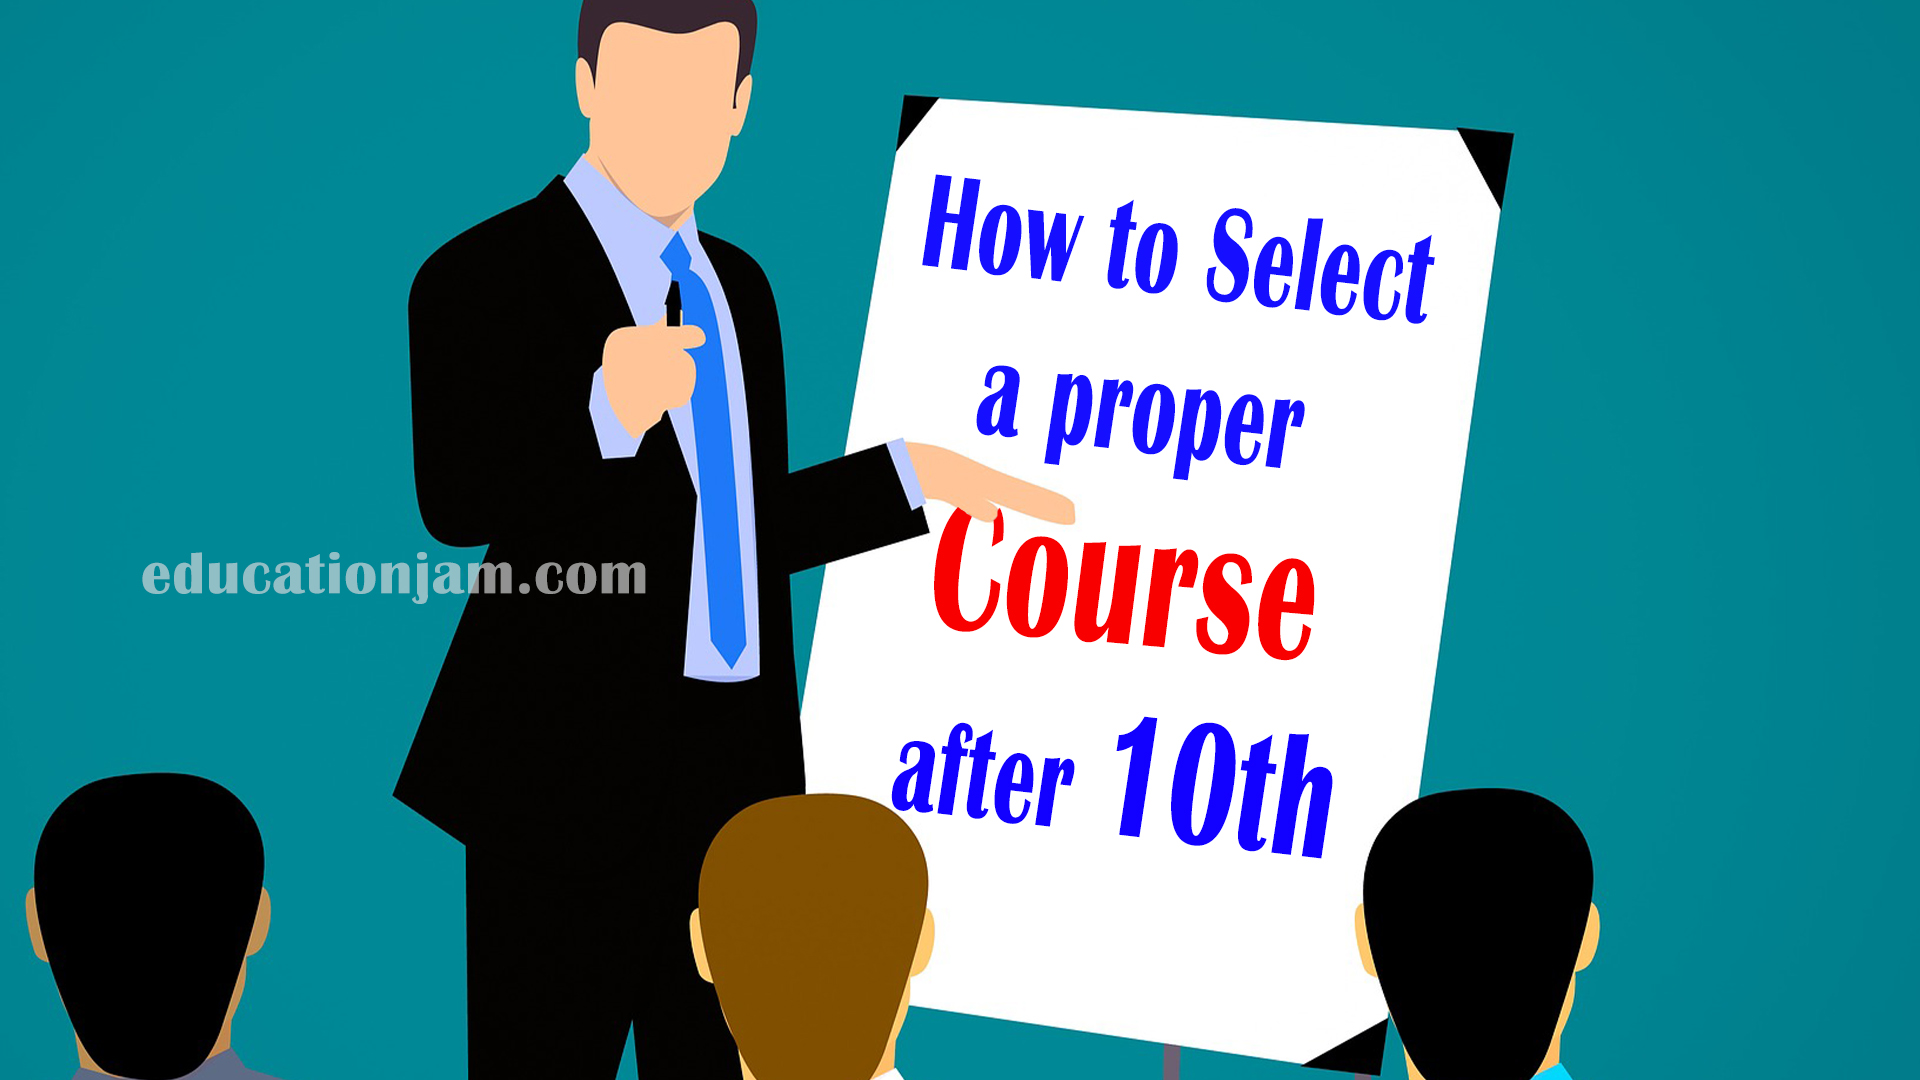 How to select proper course after 10th